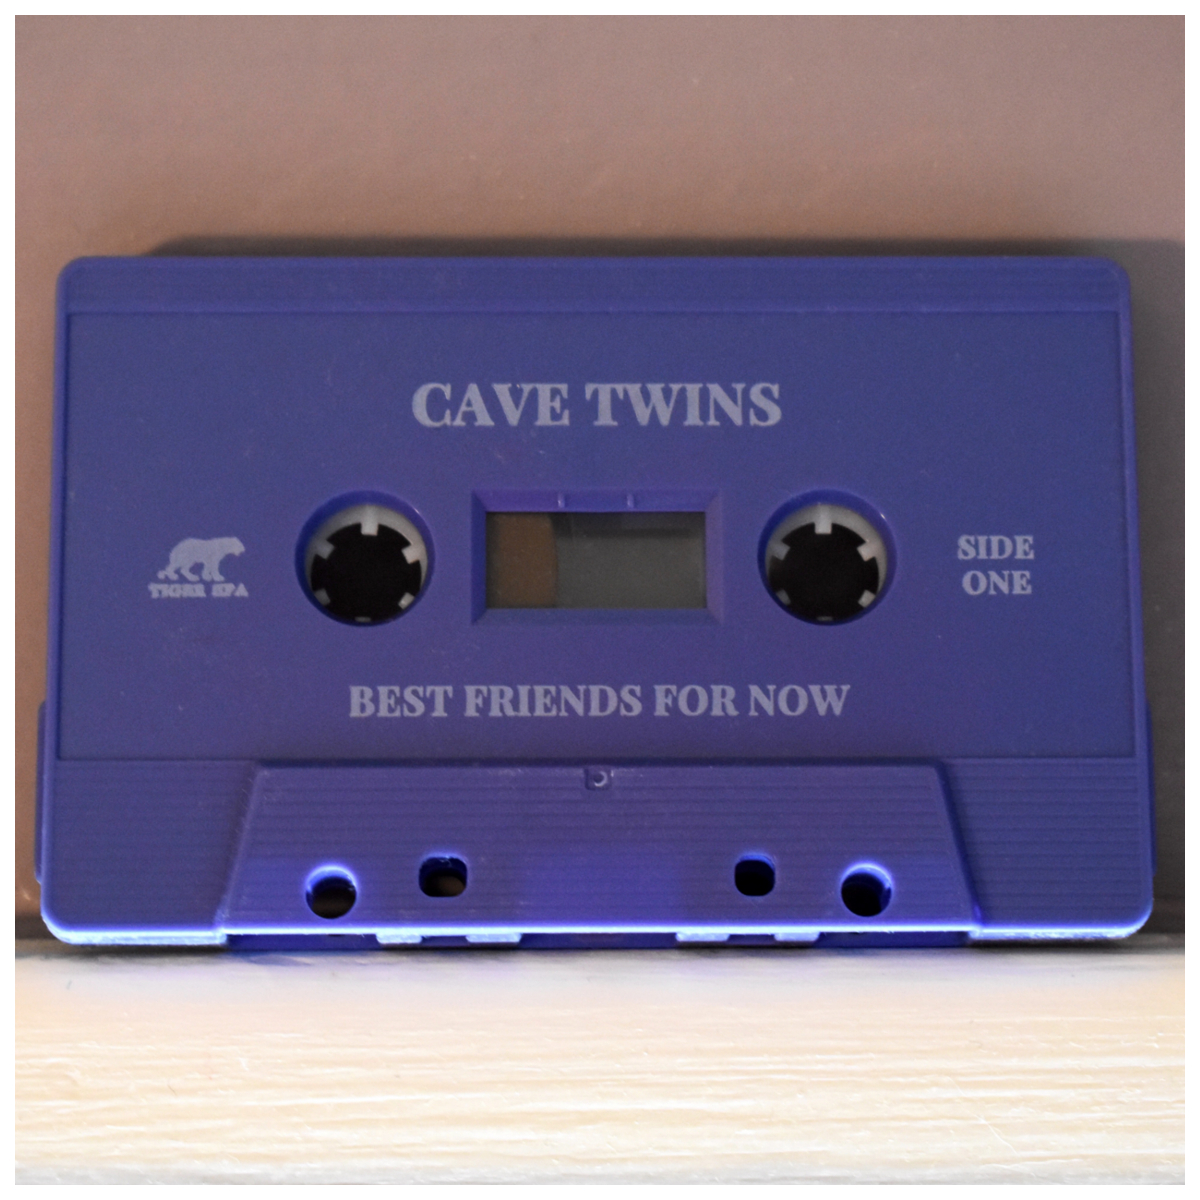 Best Friends For Now - Cassette - $20 (shipping  included)